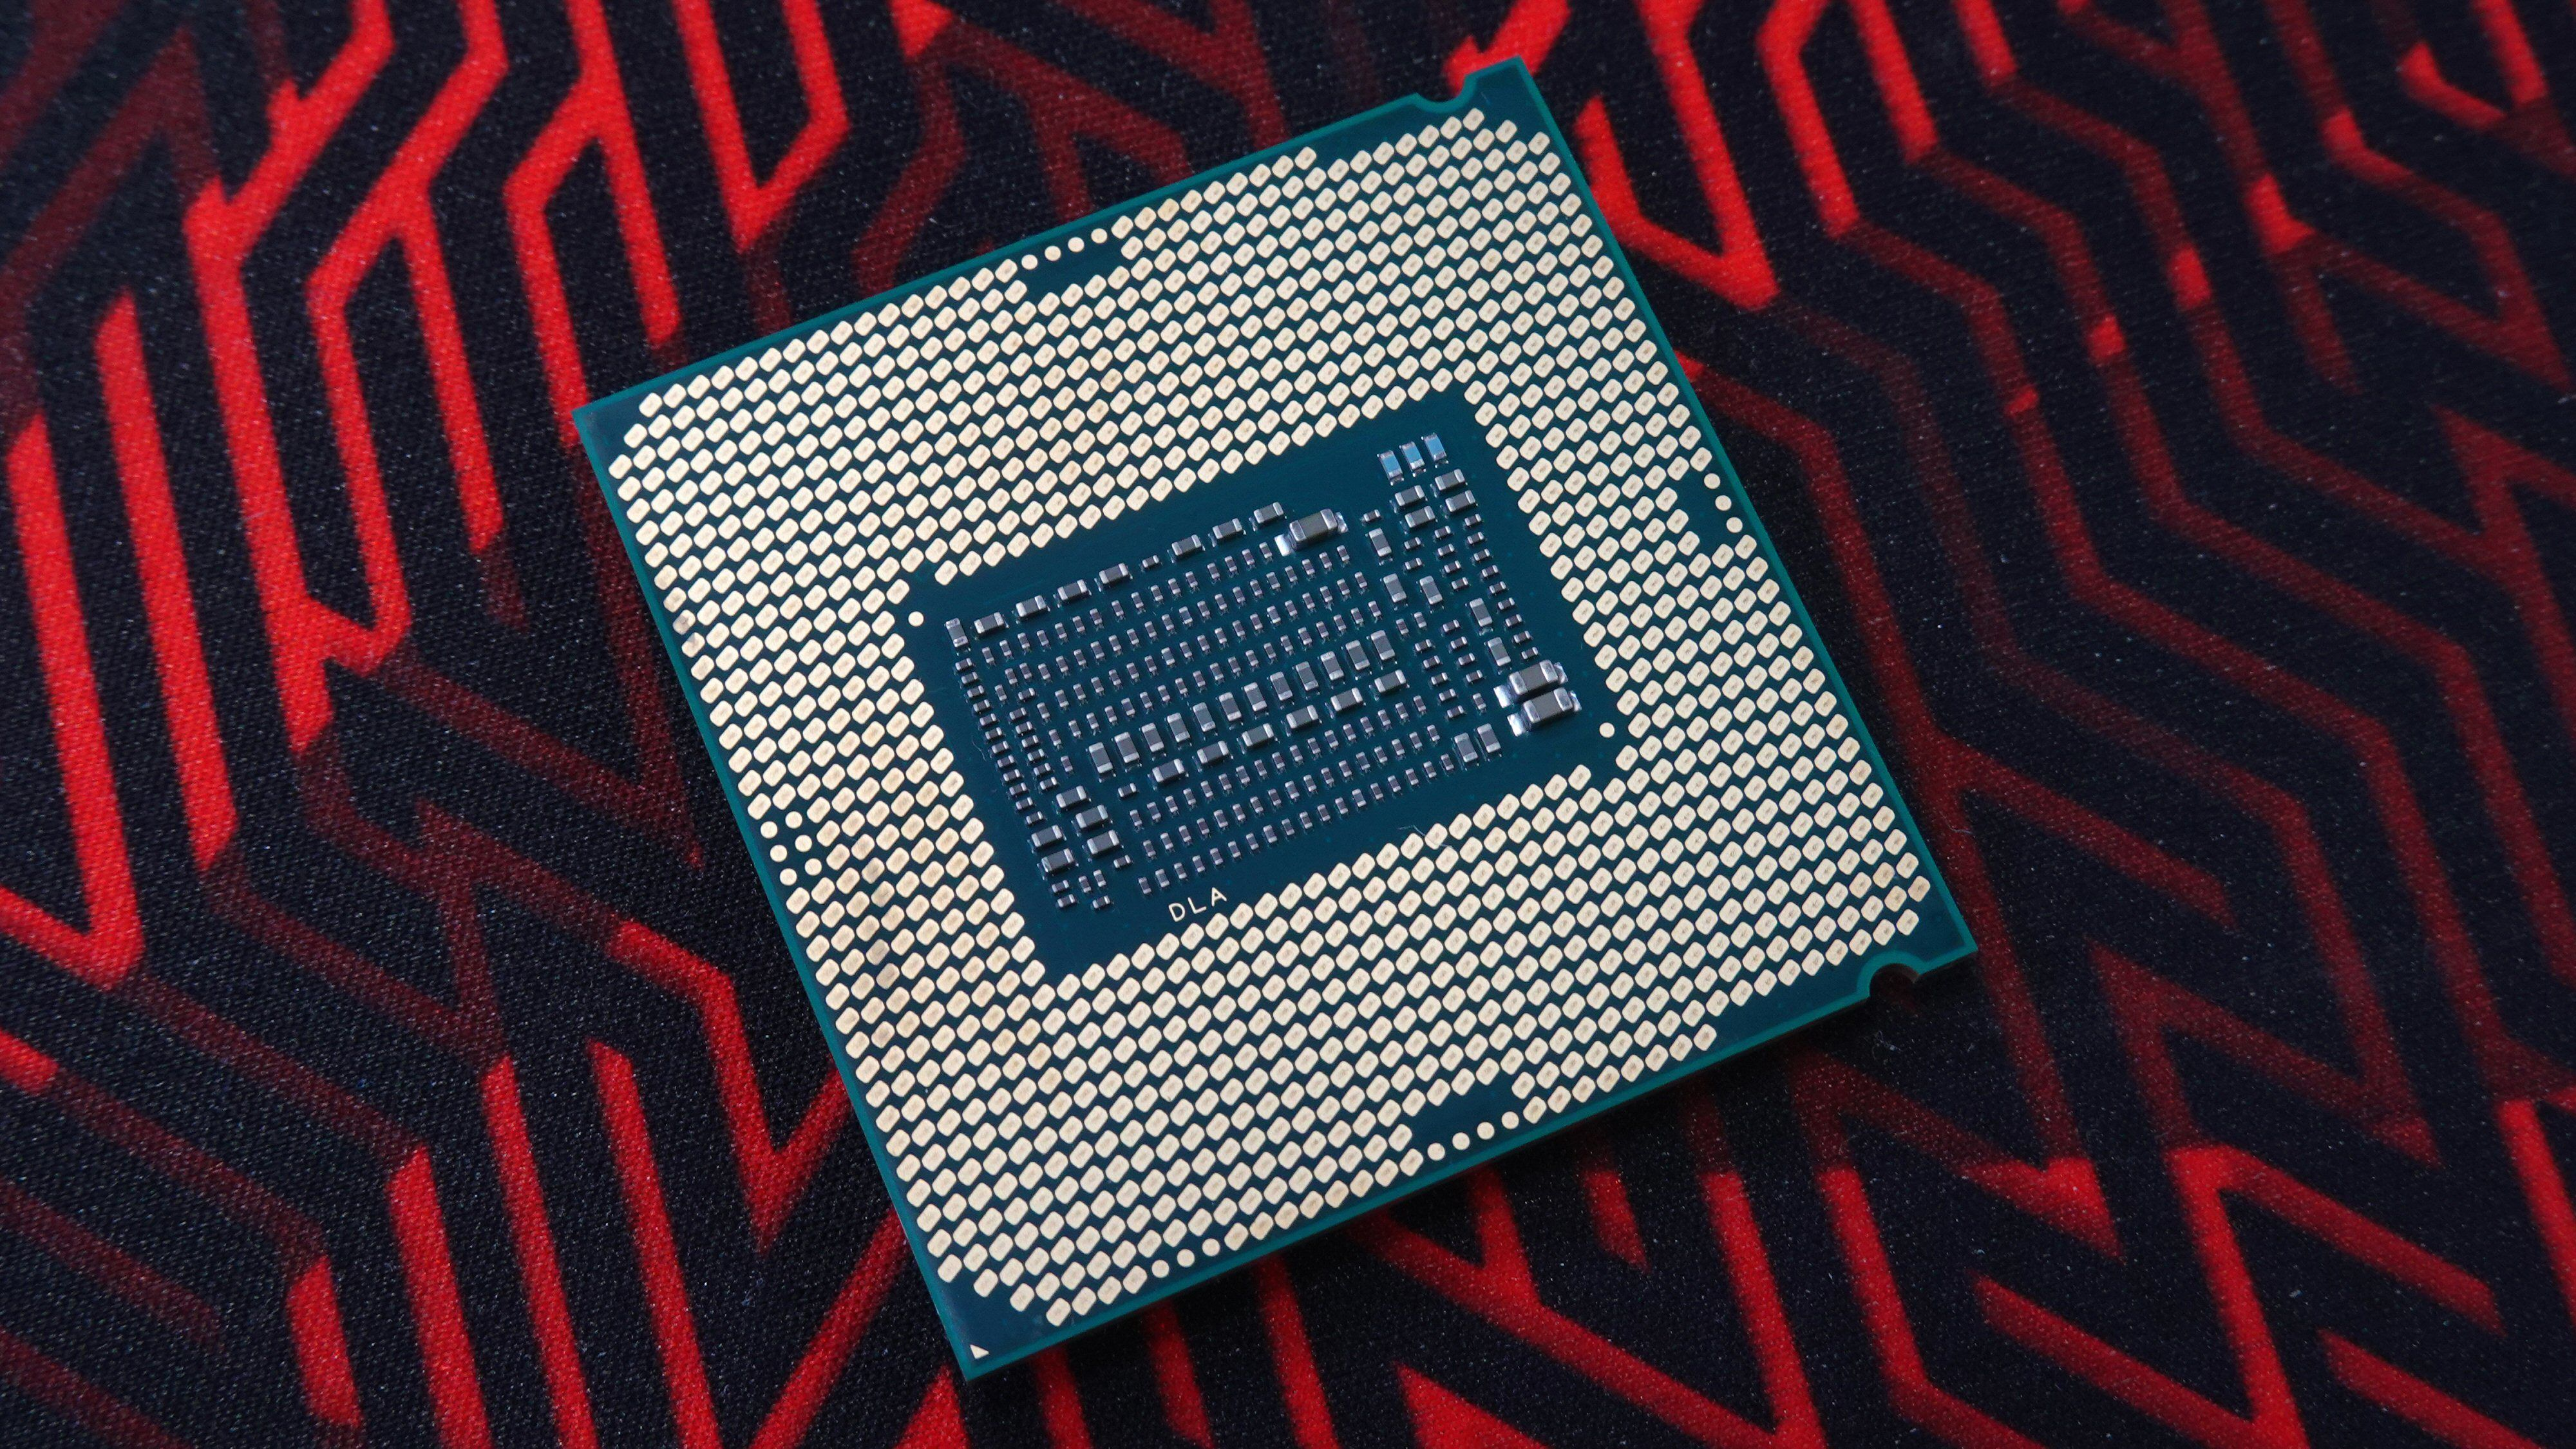 You can now overclock with one touch – shilfa